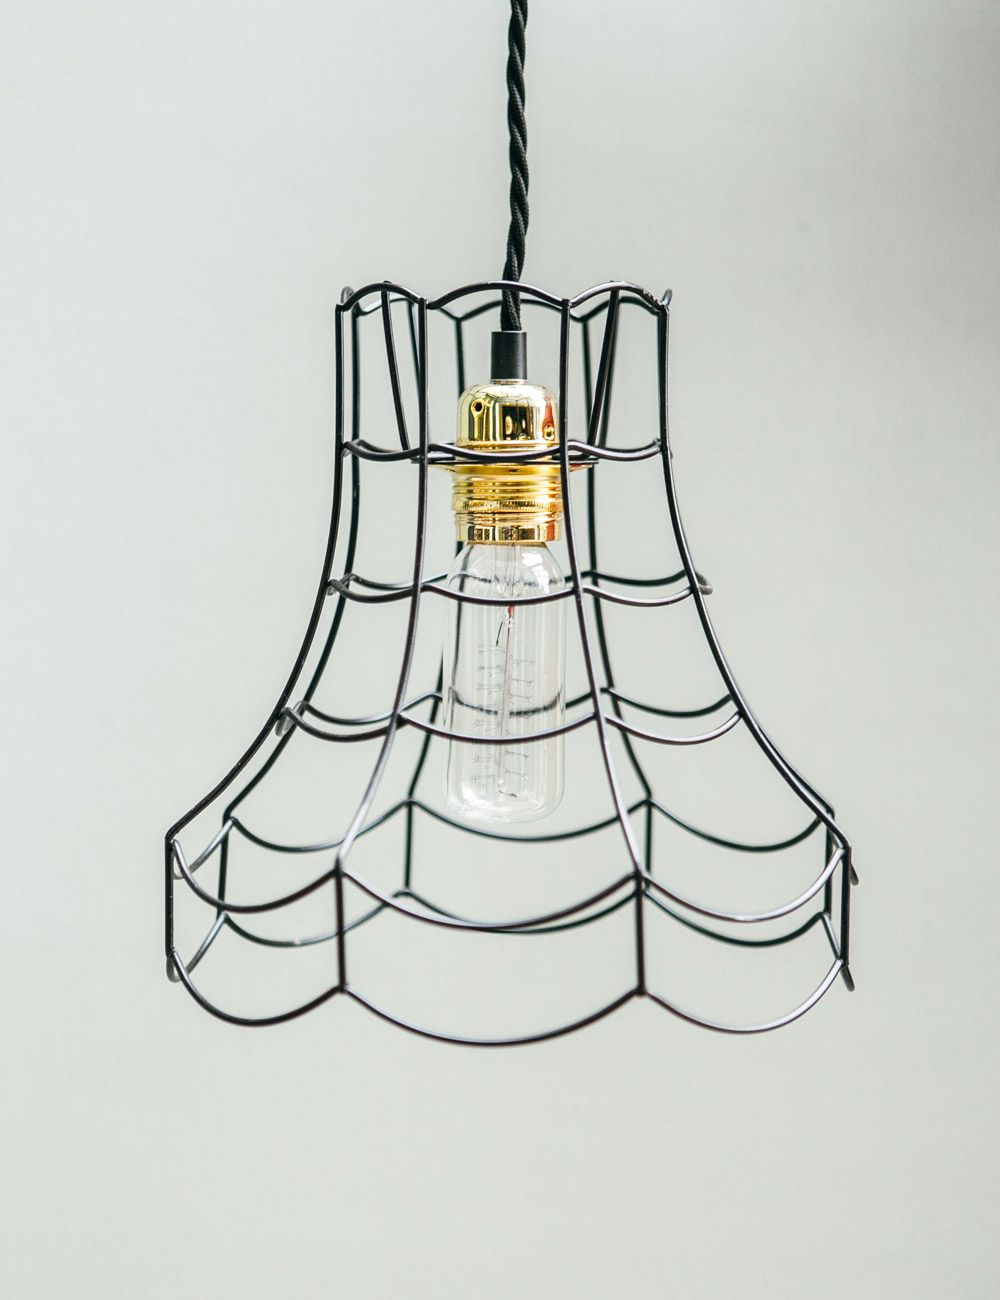 Vintage Wire Lamp Shade | Lighting | Pinterest | Vintage, Lampshades ...